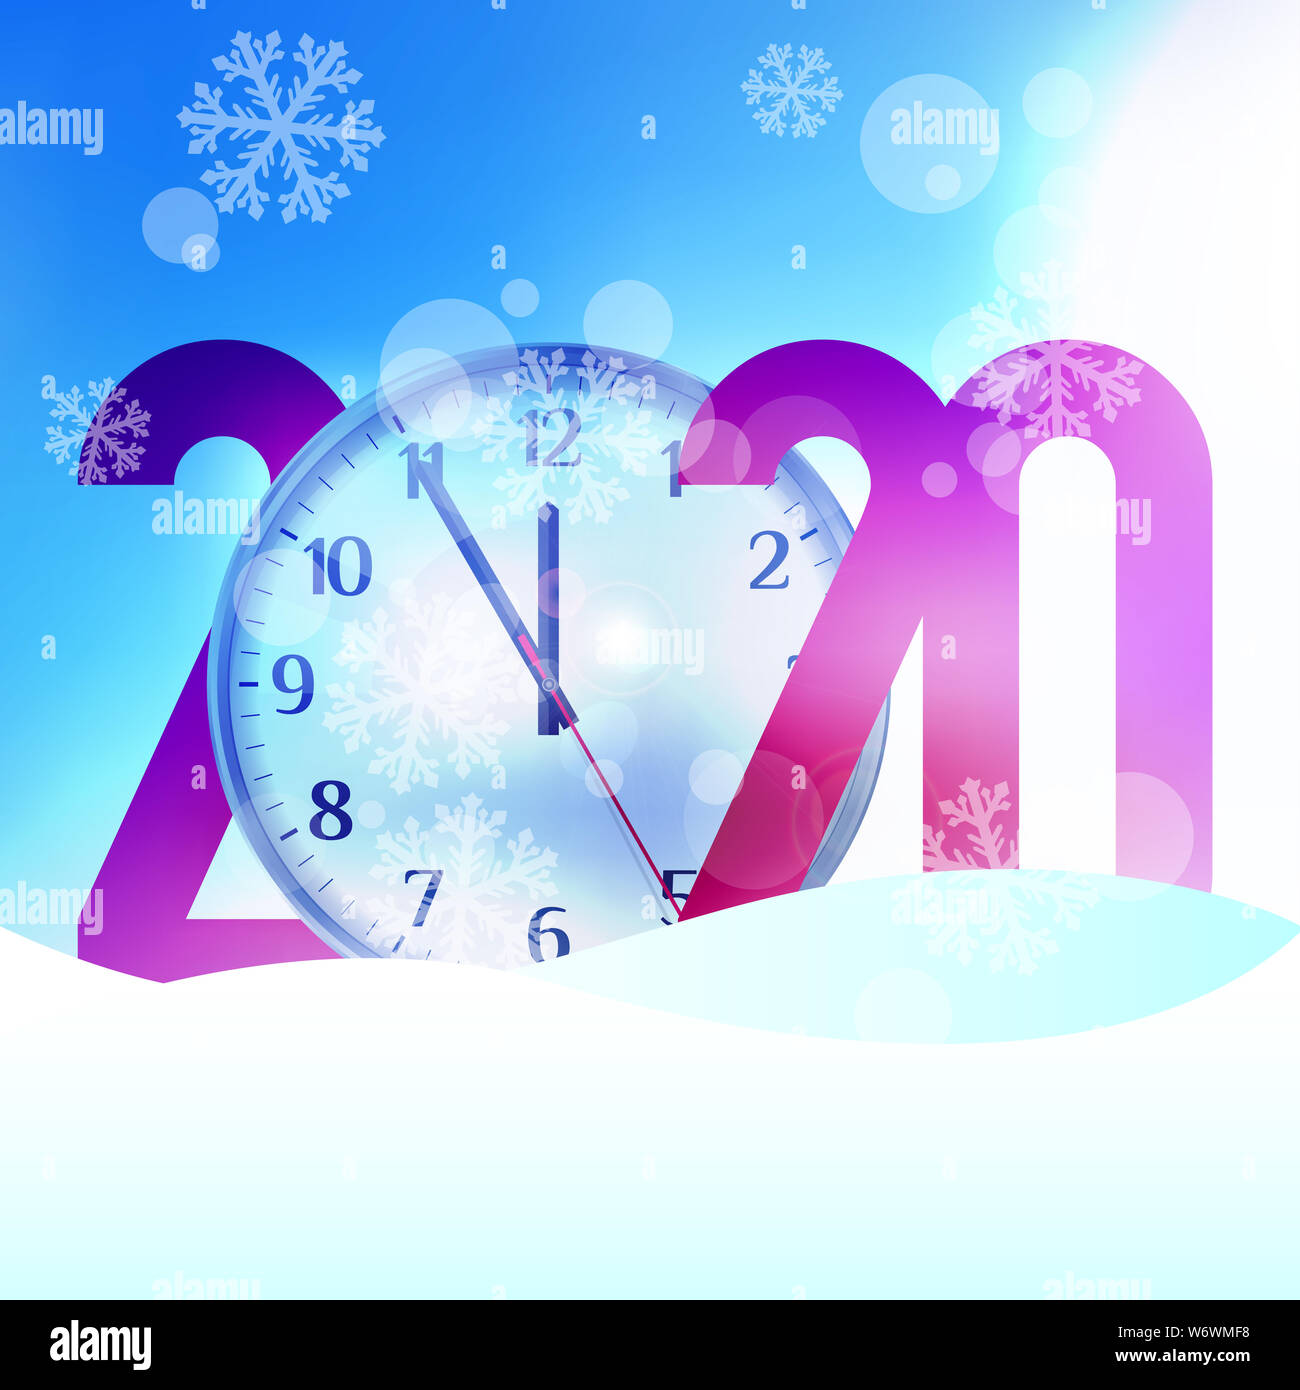 Merry Christmas And Happy New Year 2020 Background Template Christmas Greeting Card Illustration Stock Photo Alamy